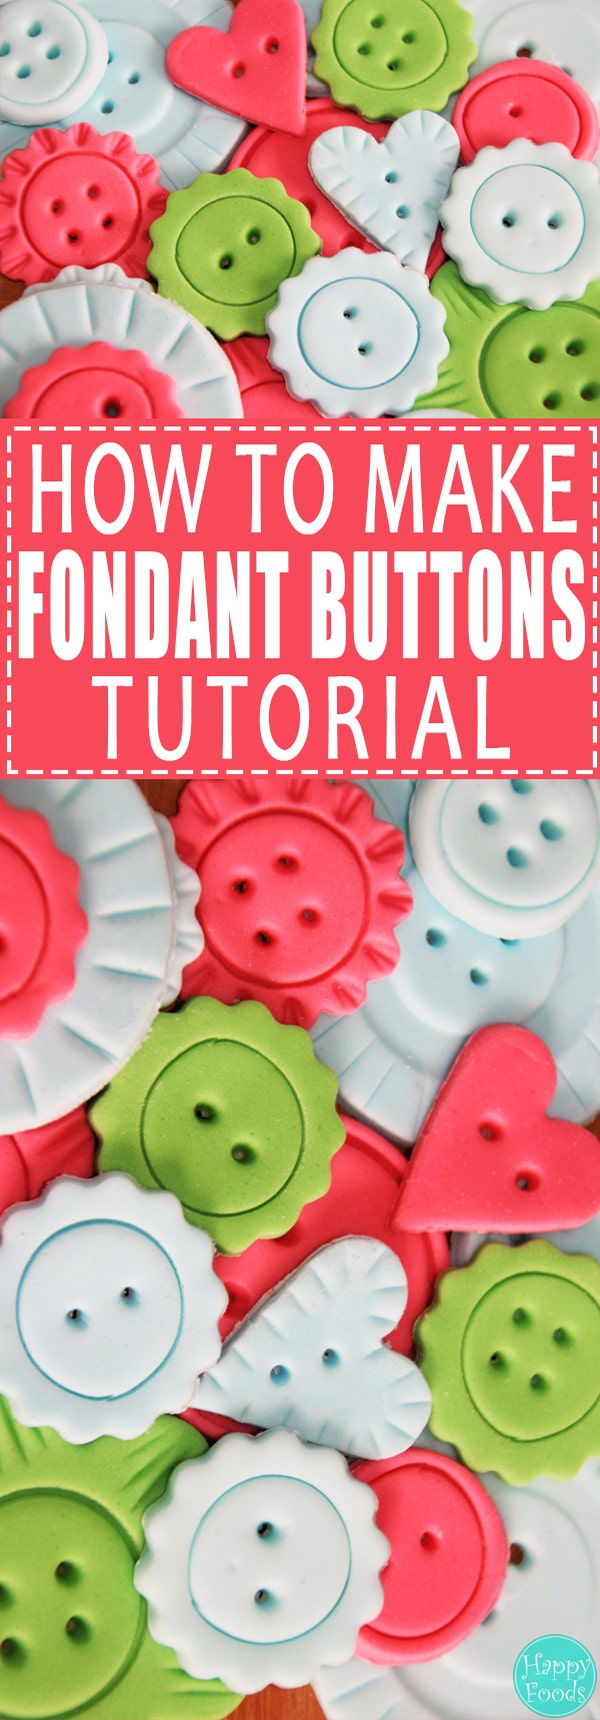 Learn how to make Fondant Buttons - Easy cake decorating video tutorial. Step by step instructions and all the tools what you need to make those cute buttons